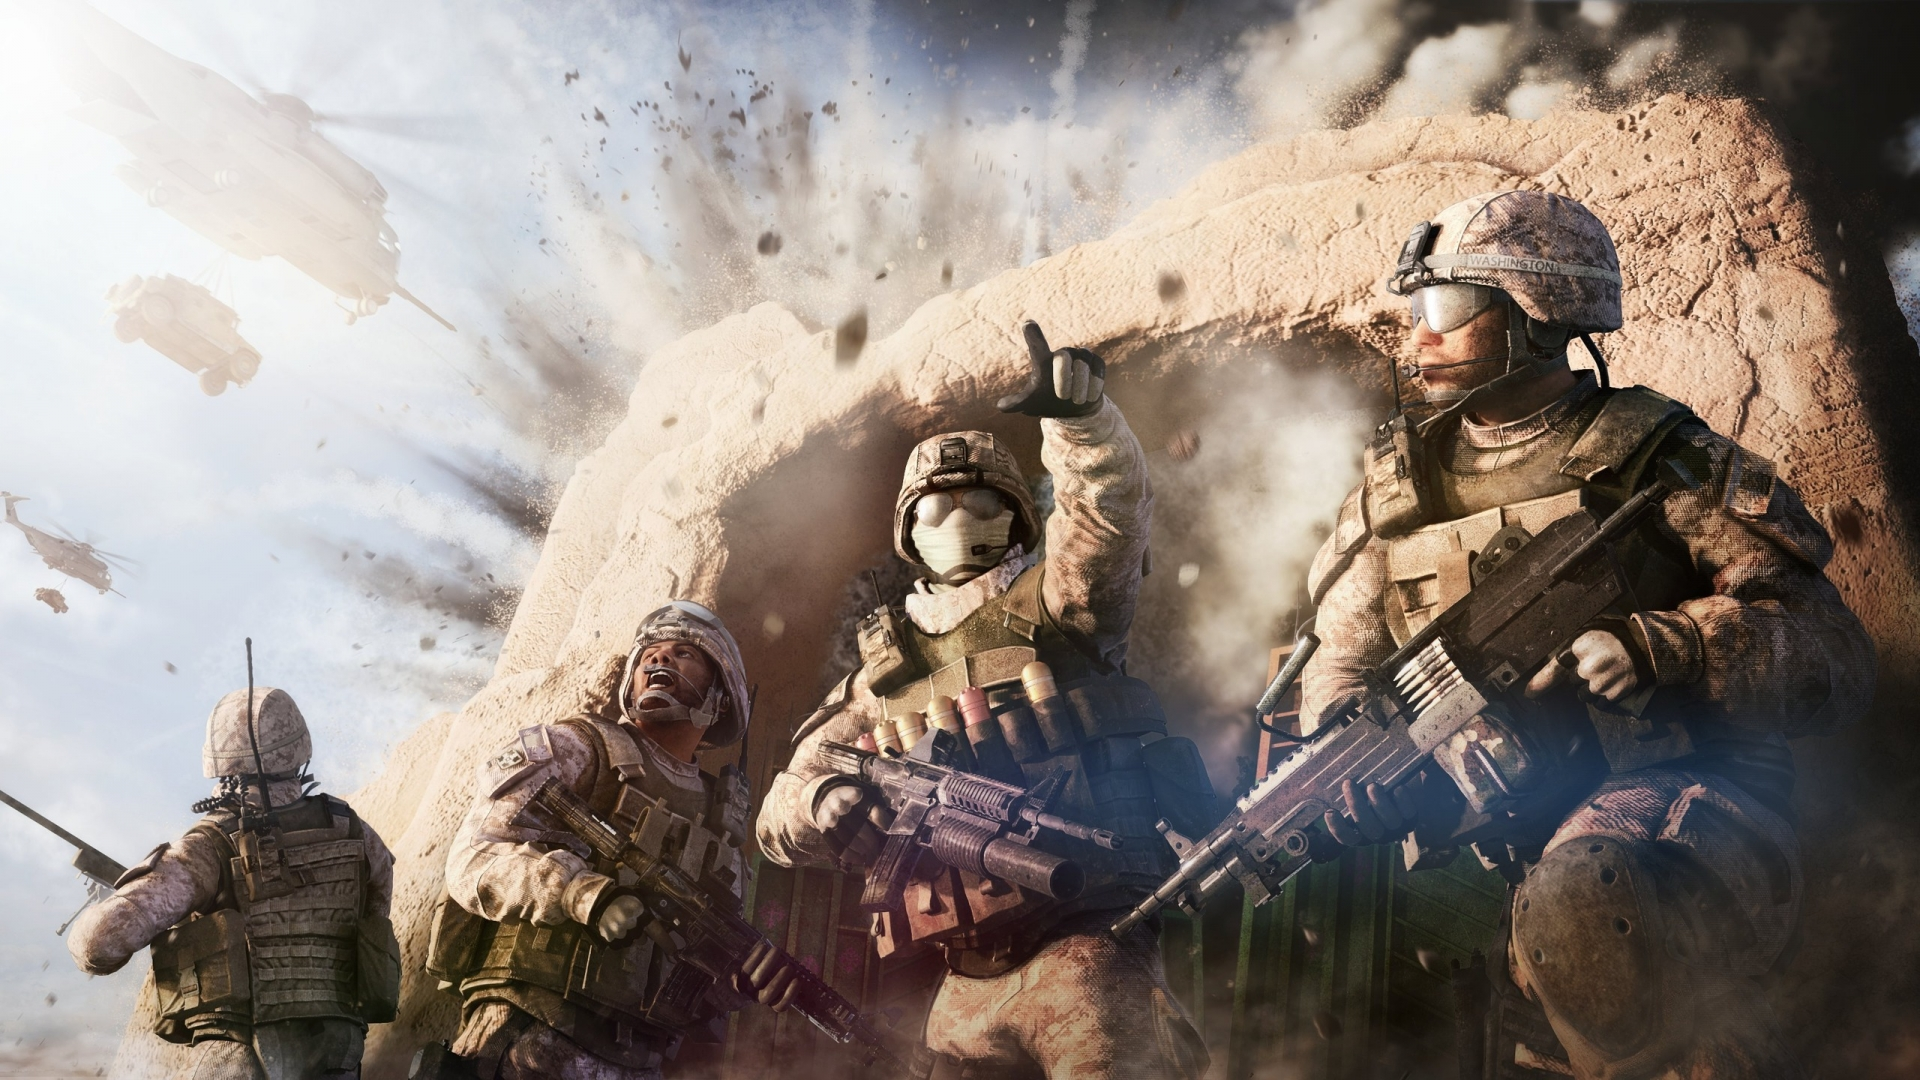 Download Us Army Wallpaper Hd 51: Military Wallpapers HD 1920x1080